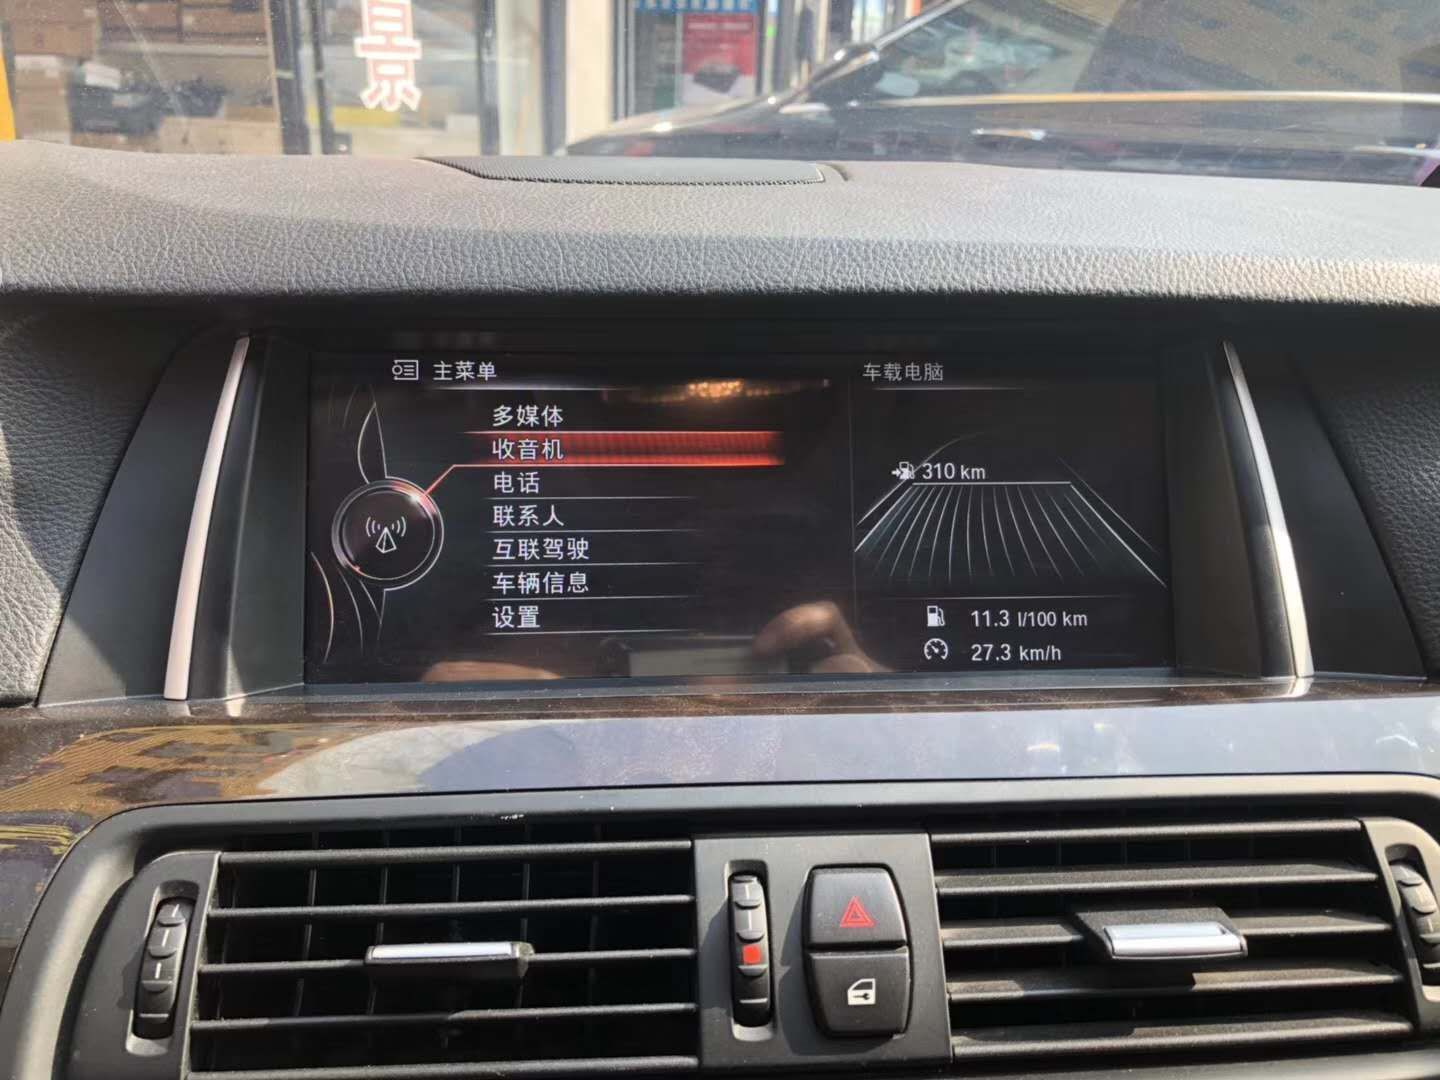 BMW 5 Series: Screens